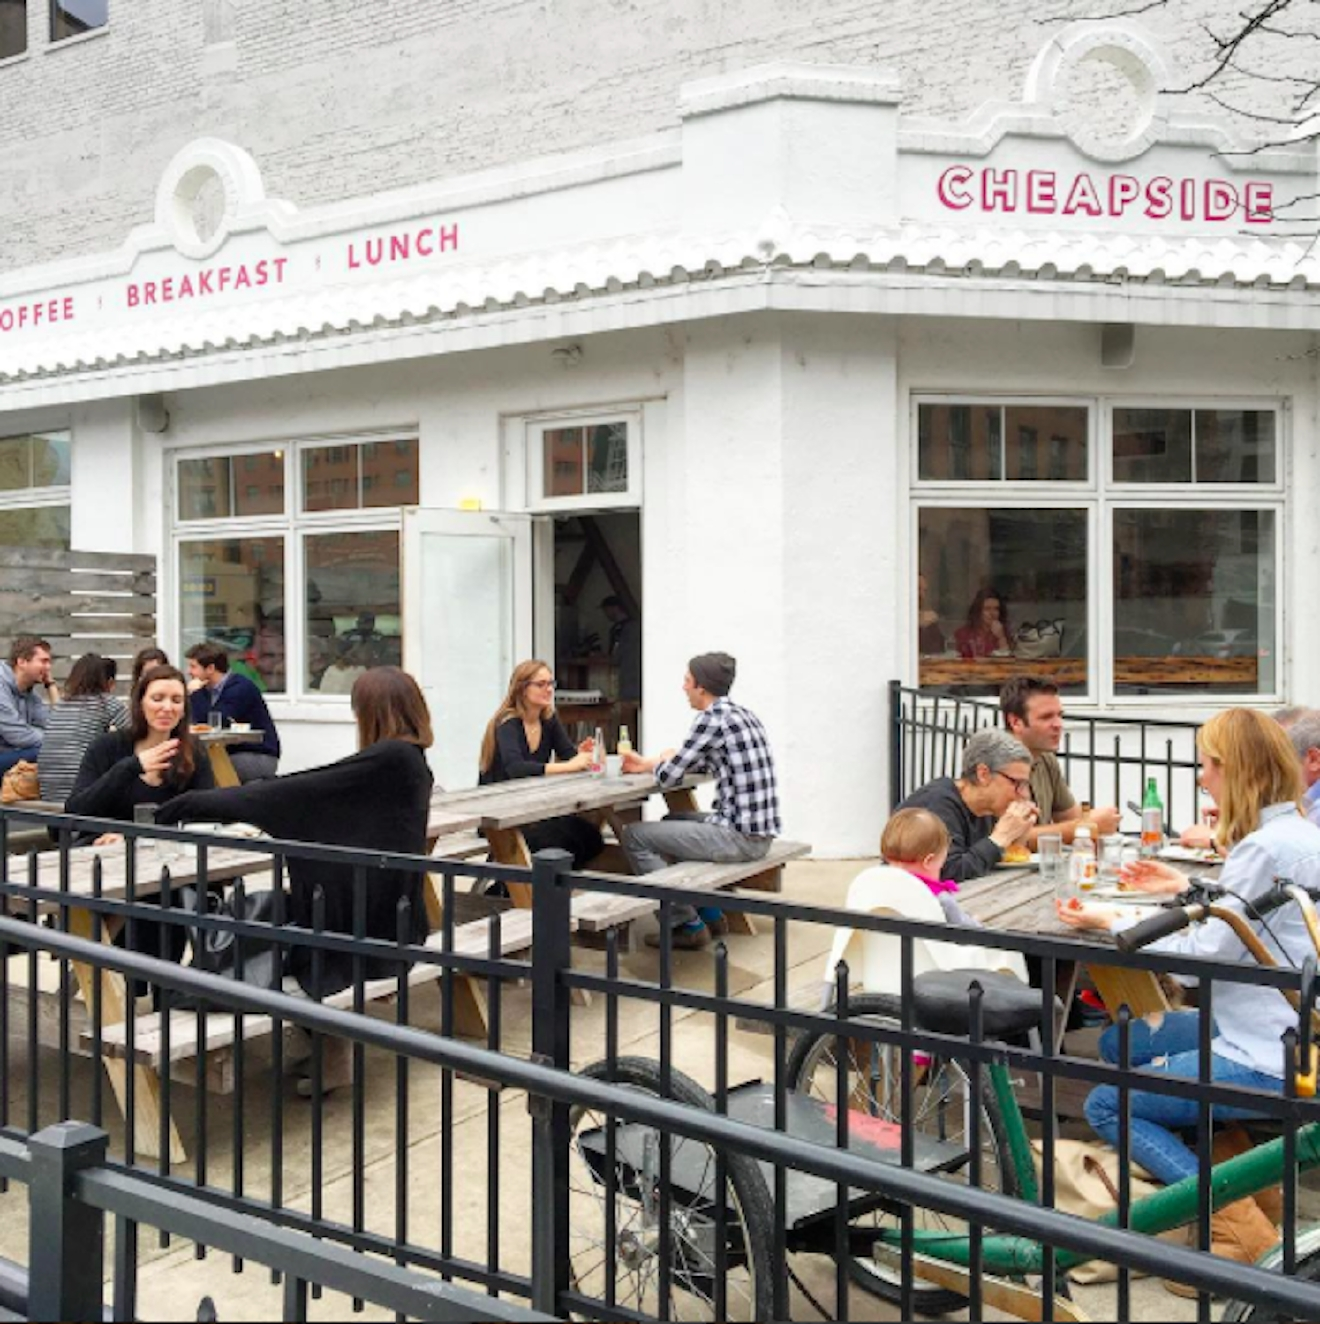 Cheapside Cafe -- located in Downtown Cincinnati at 326 E. 8TH Street (45202). / Image courtesy of Cheapside Cafe